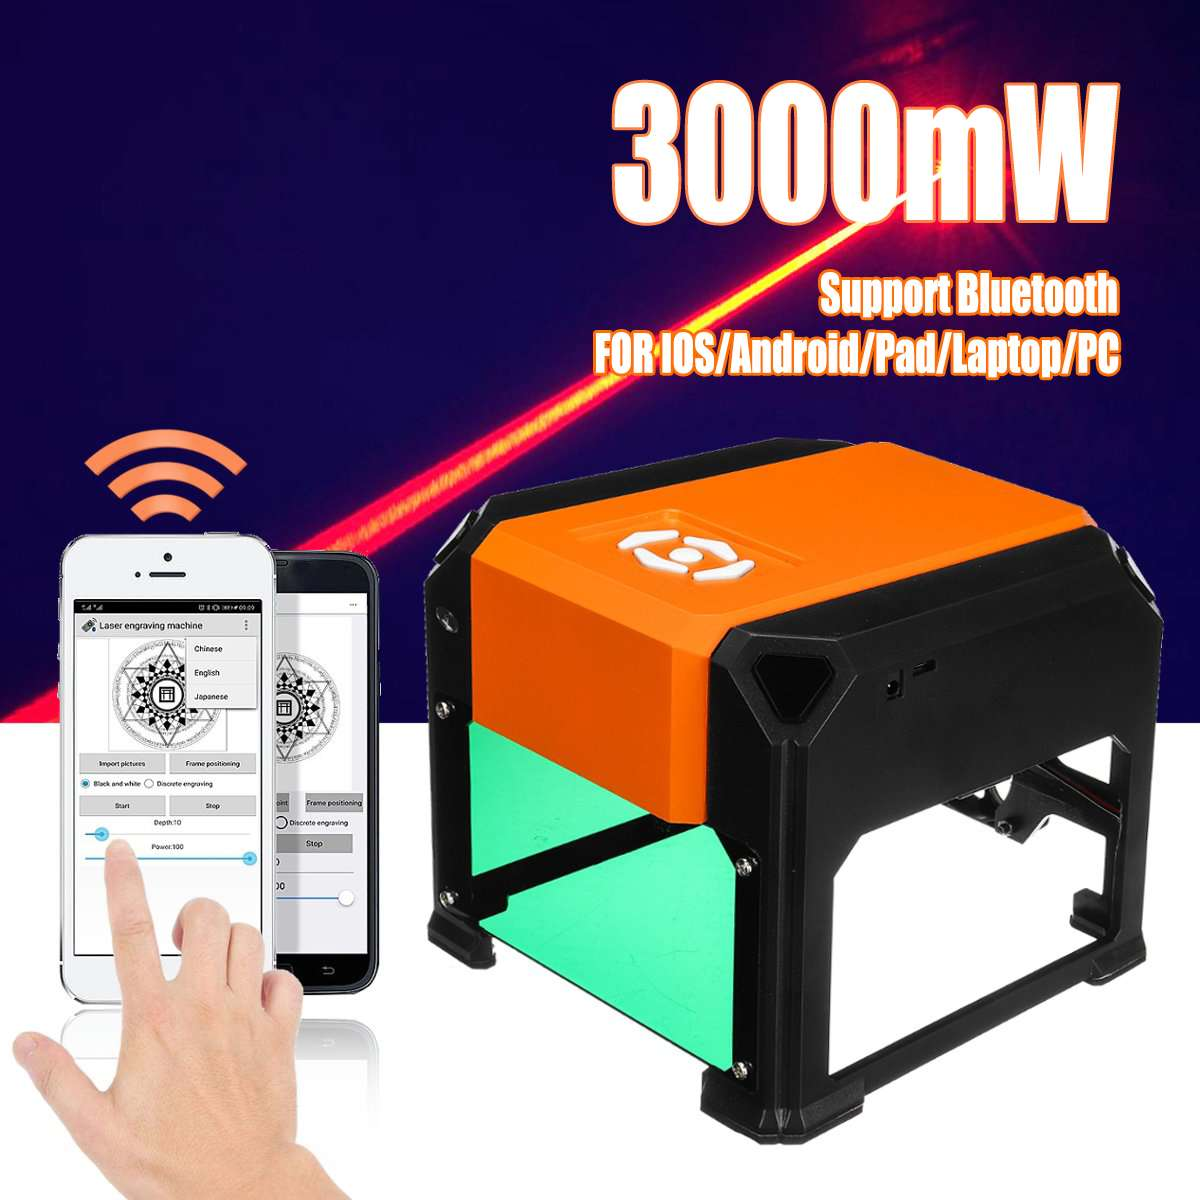 3000mW USB bluetooth Desktop Laser Gravur Maschine DIY Logo Mark Drucker Cutter CNC Laser Carving Maschine AC 110- 220V